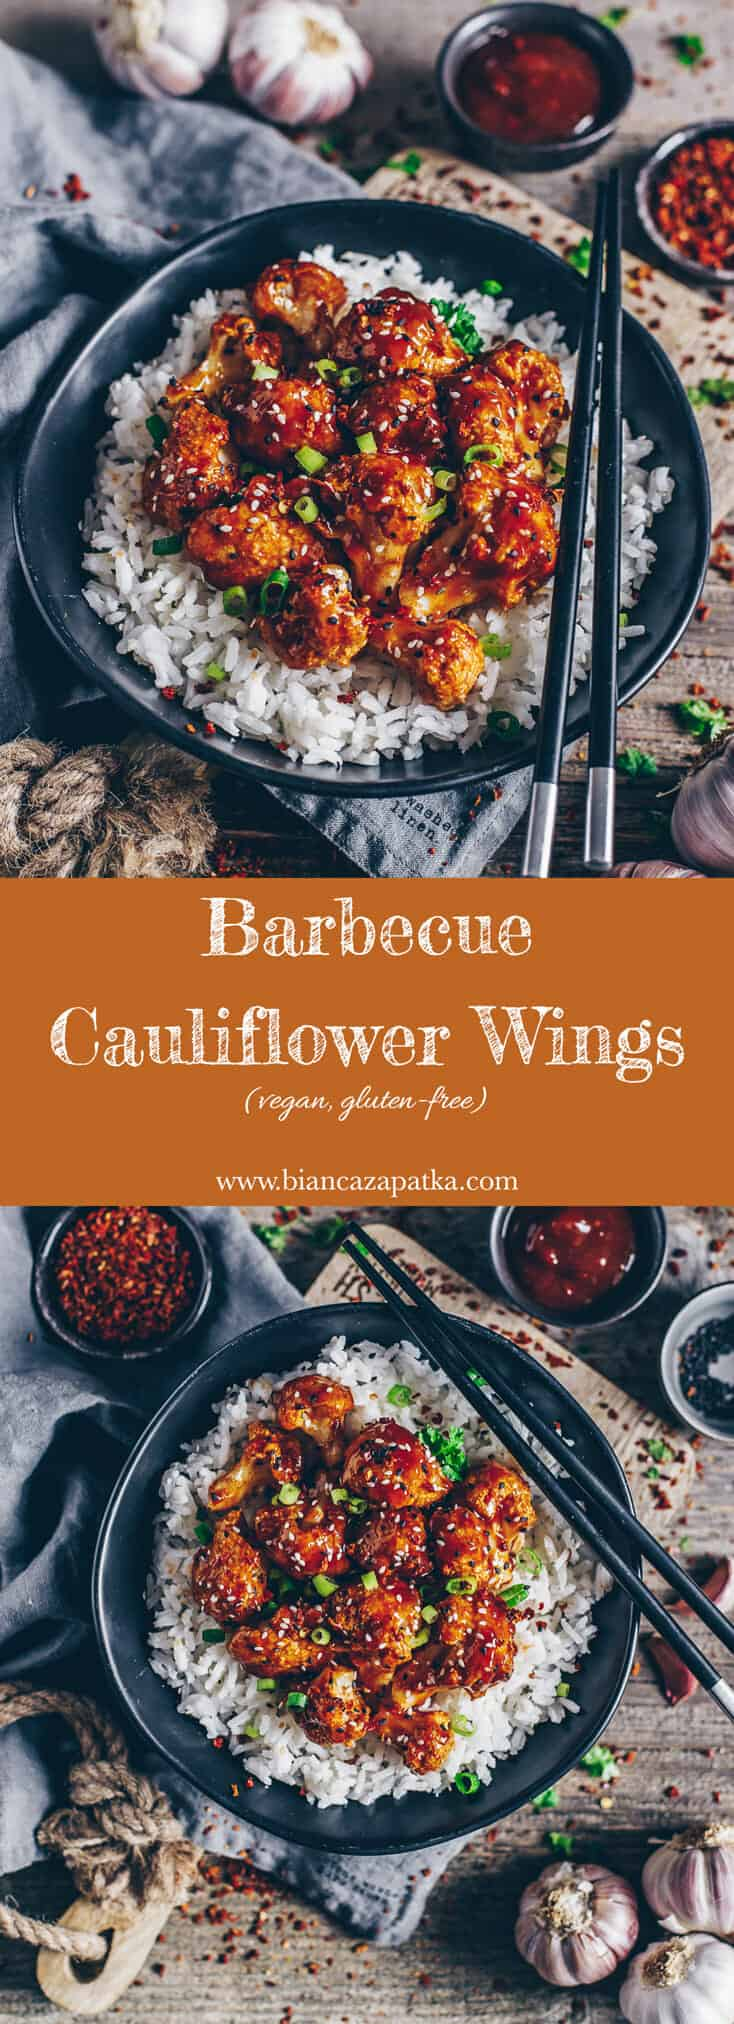 Recipe for easy barbecue cauliflower wings with homemade sweet and spicy bbq sauce - vegan, healthy and gluten-free - perfect as side dish or snack!